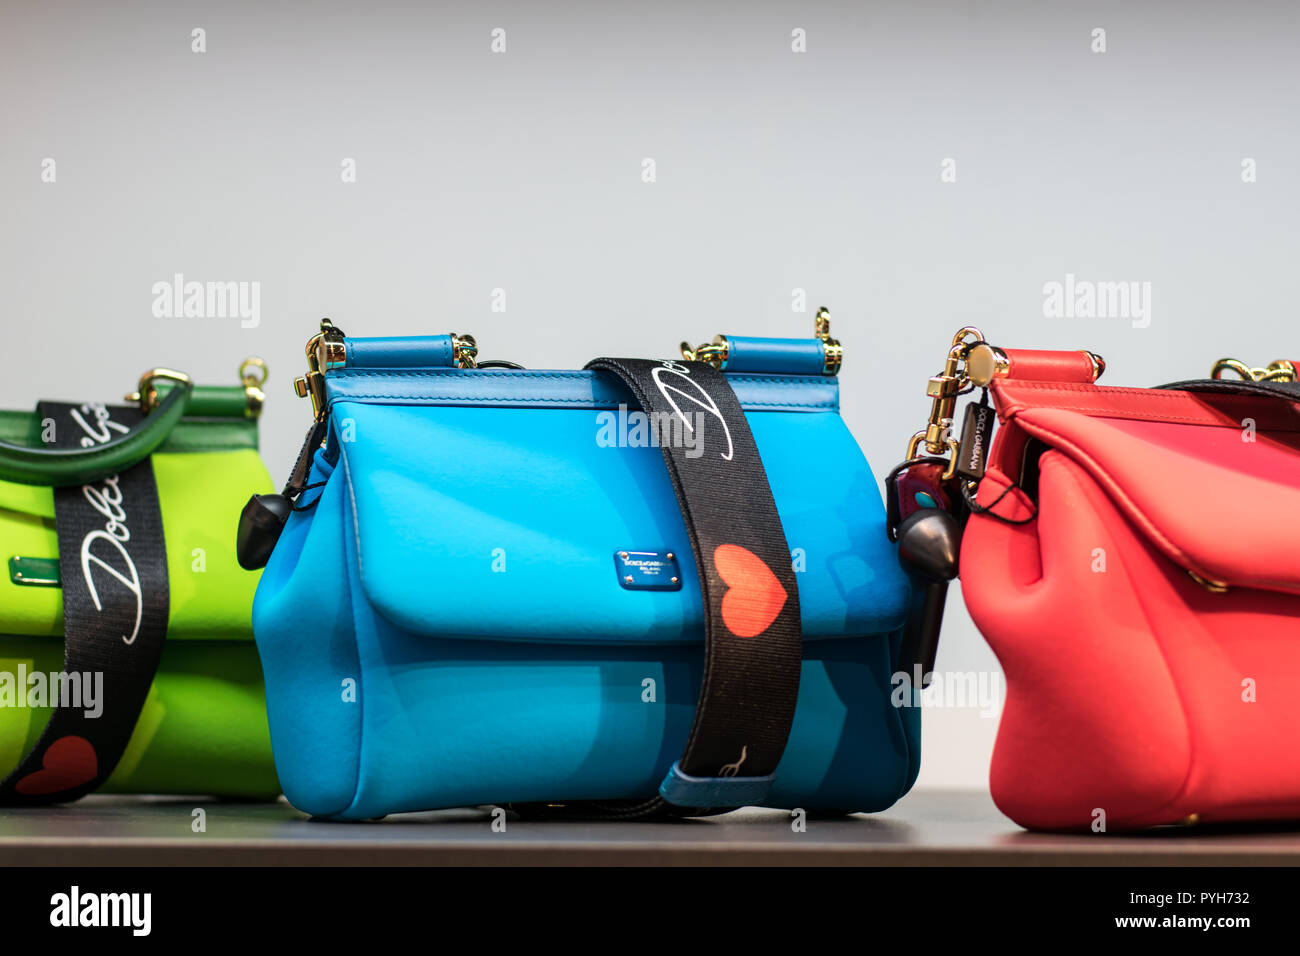 Colorful handbags from Dolce and Gabbana in German boutique - Stock Image